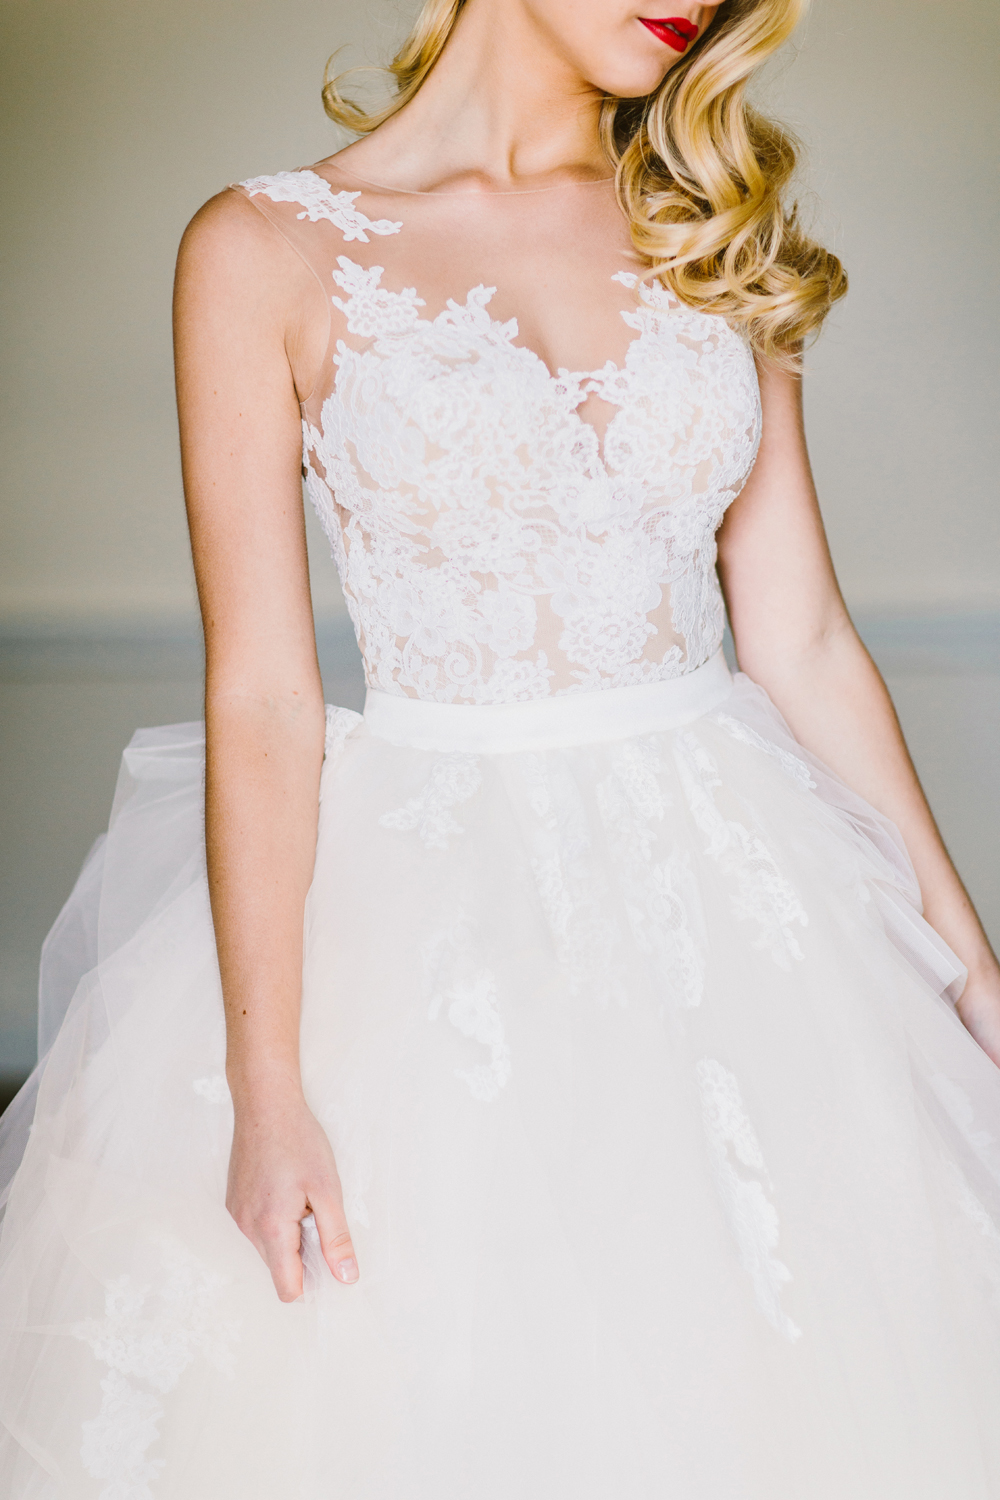 Drool worthy wedding gowns we cant stop looking at - http://ruffledblog.com/drool-worthy-wedding-gowns-we-cant-stop-looking-at